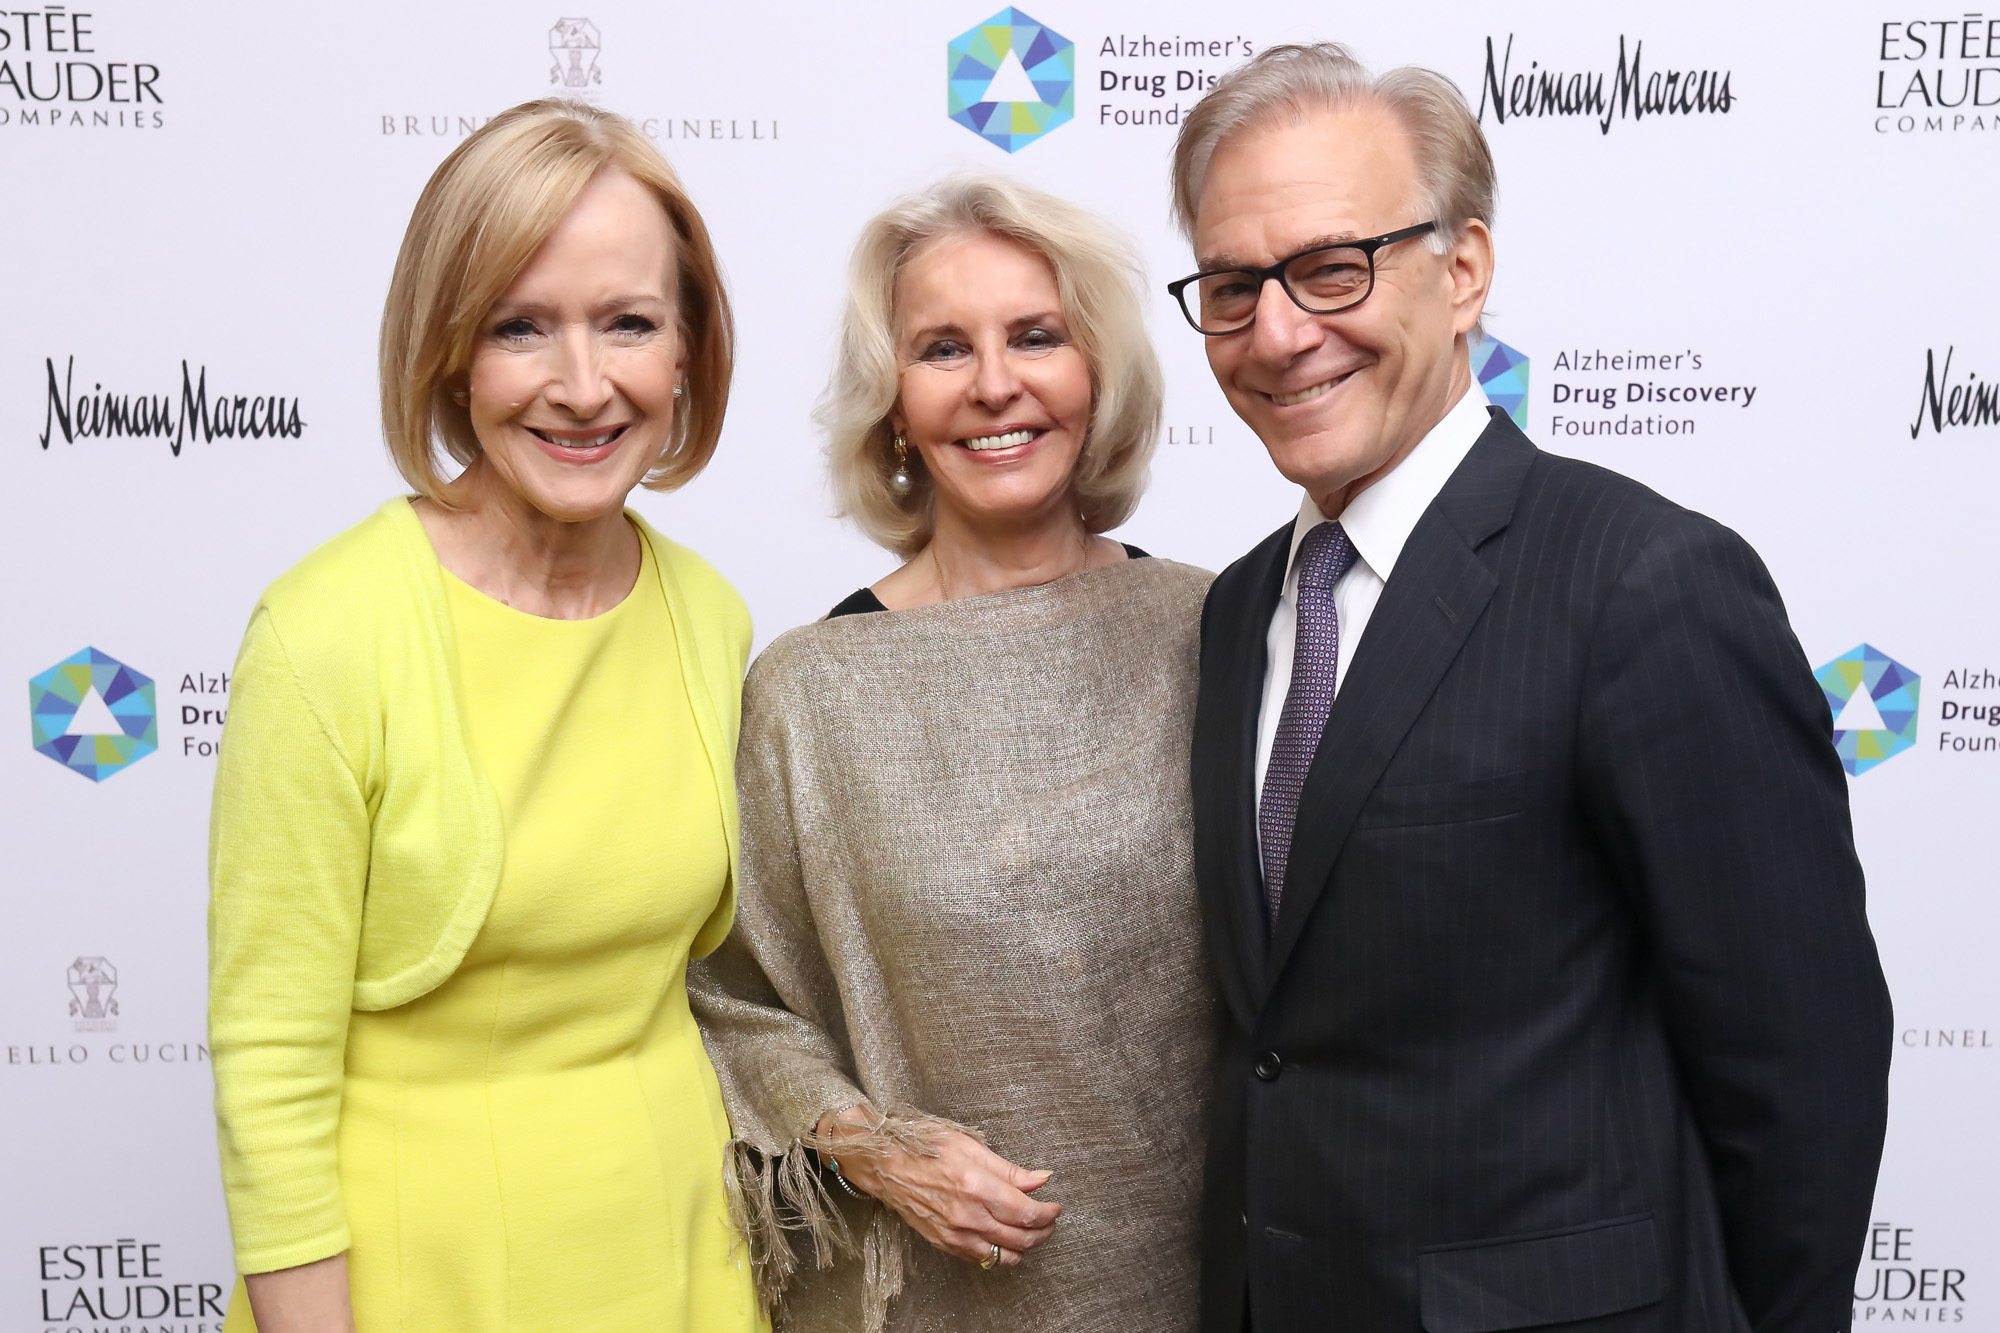 Judy Woodruff, Sally Quinn, and David Ignatius at the Seventh Annual Great Ladies Luncheon and Fashion Show